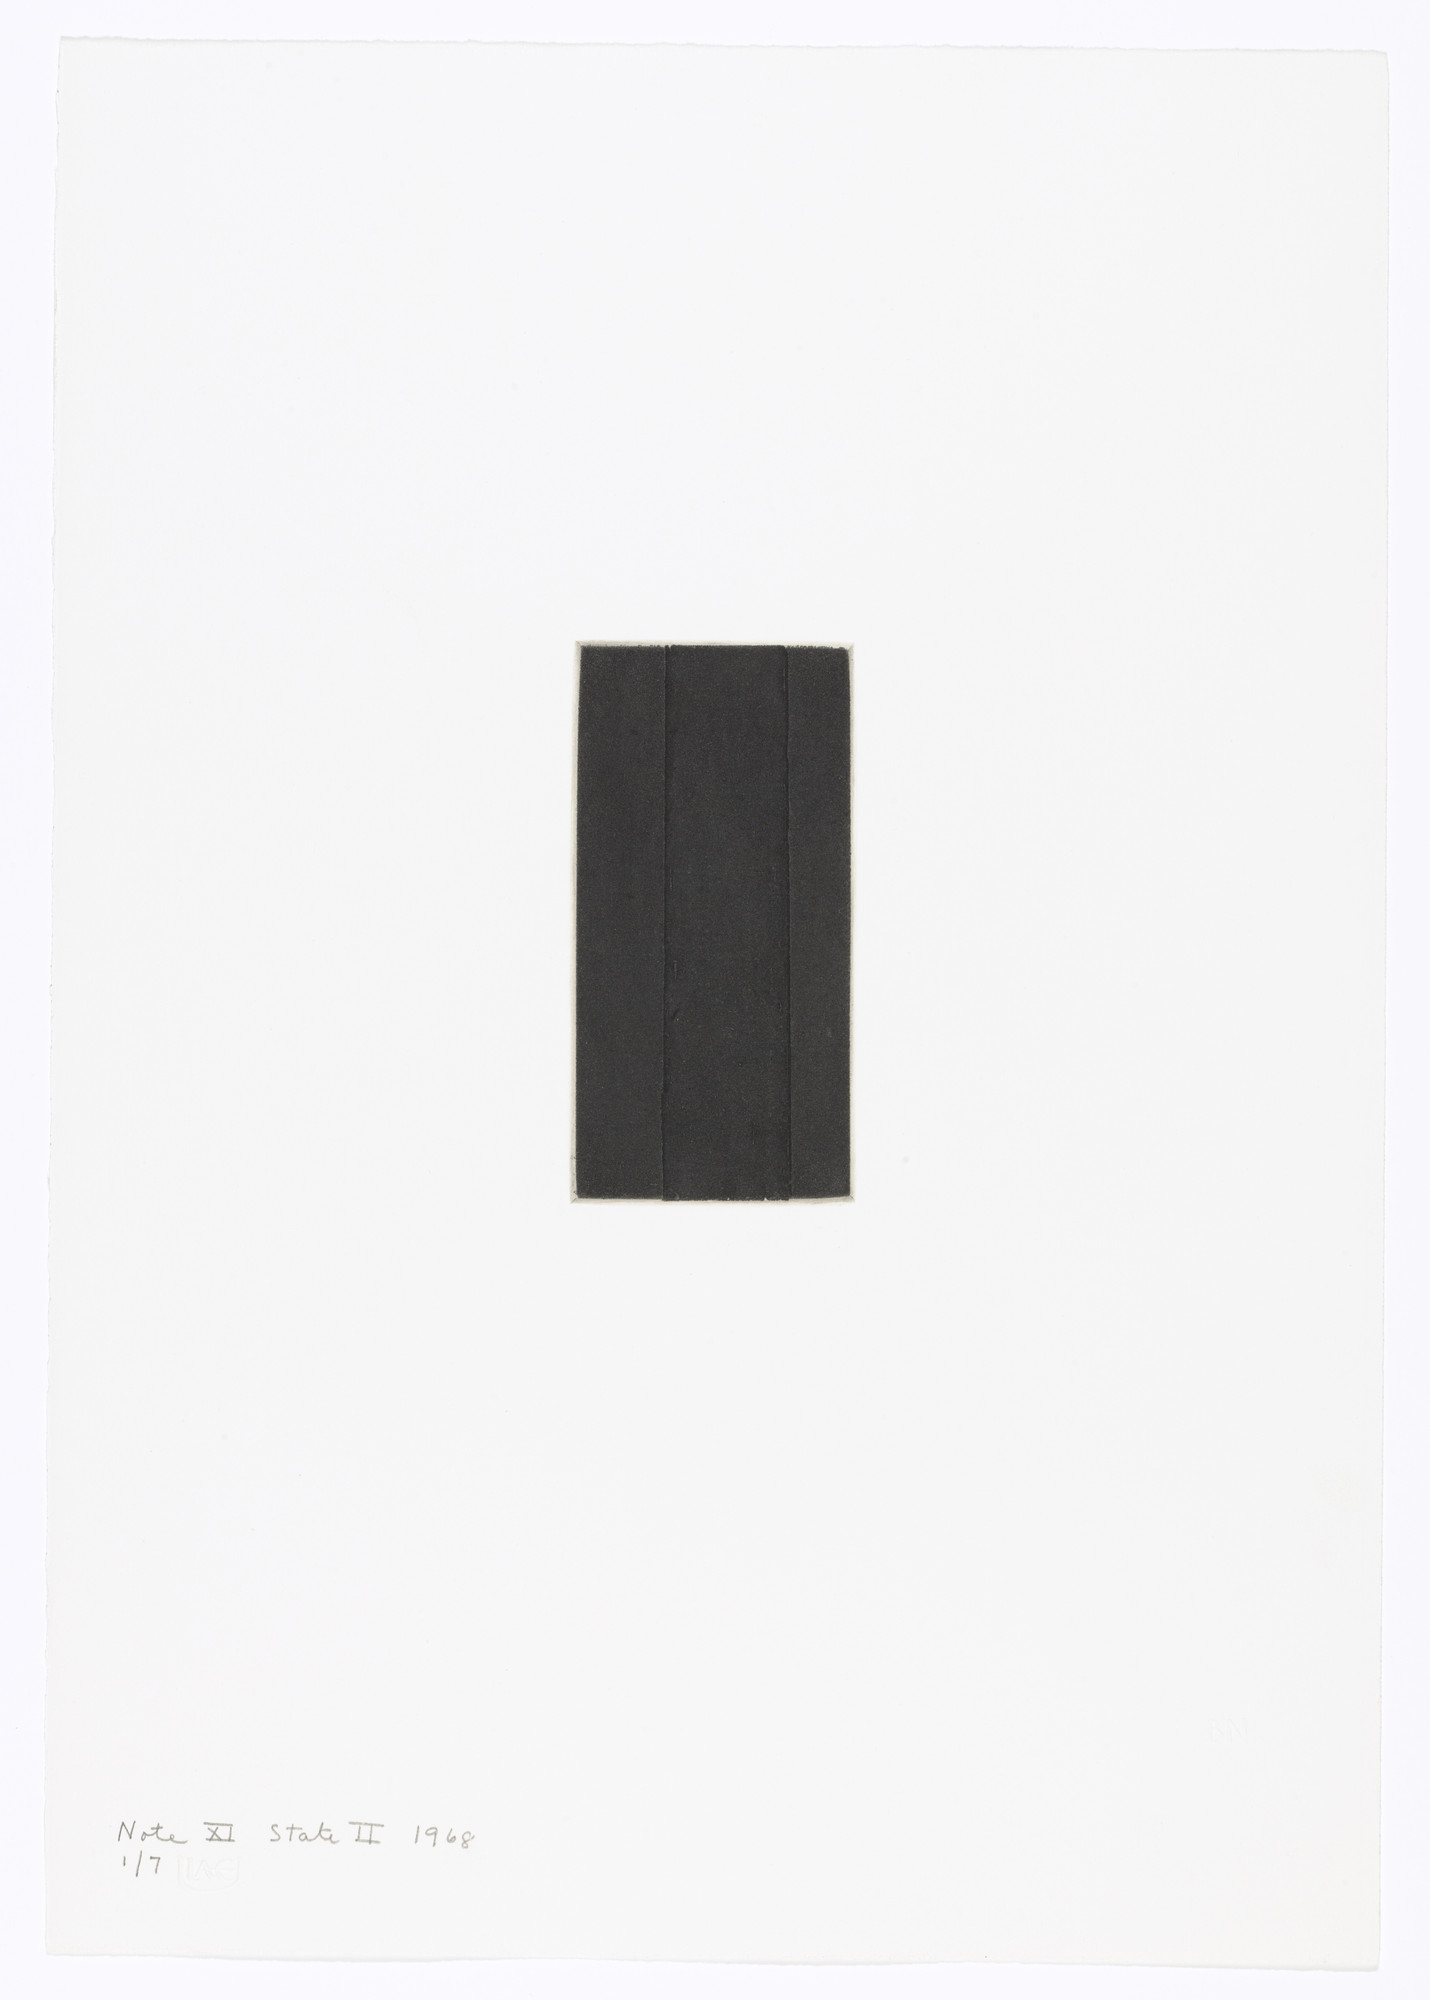 Barnett Newman. Note XI (State II) from Notes. 1968